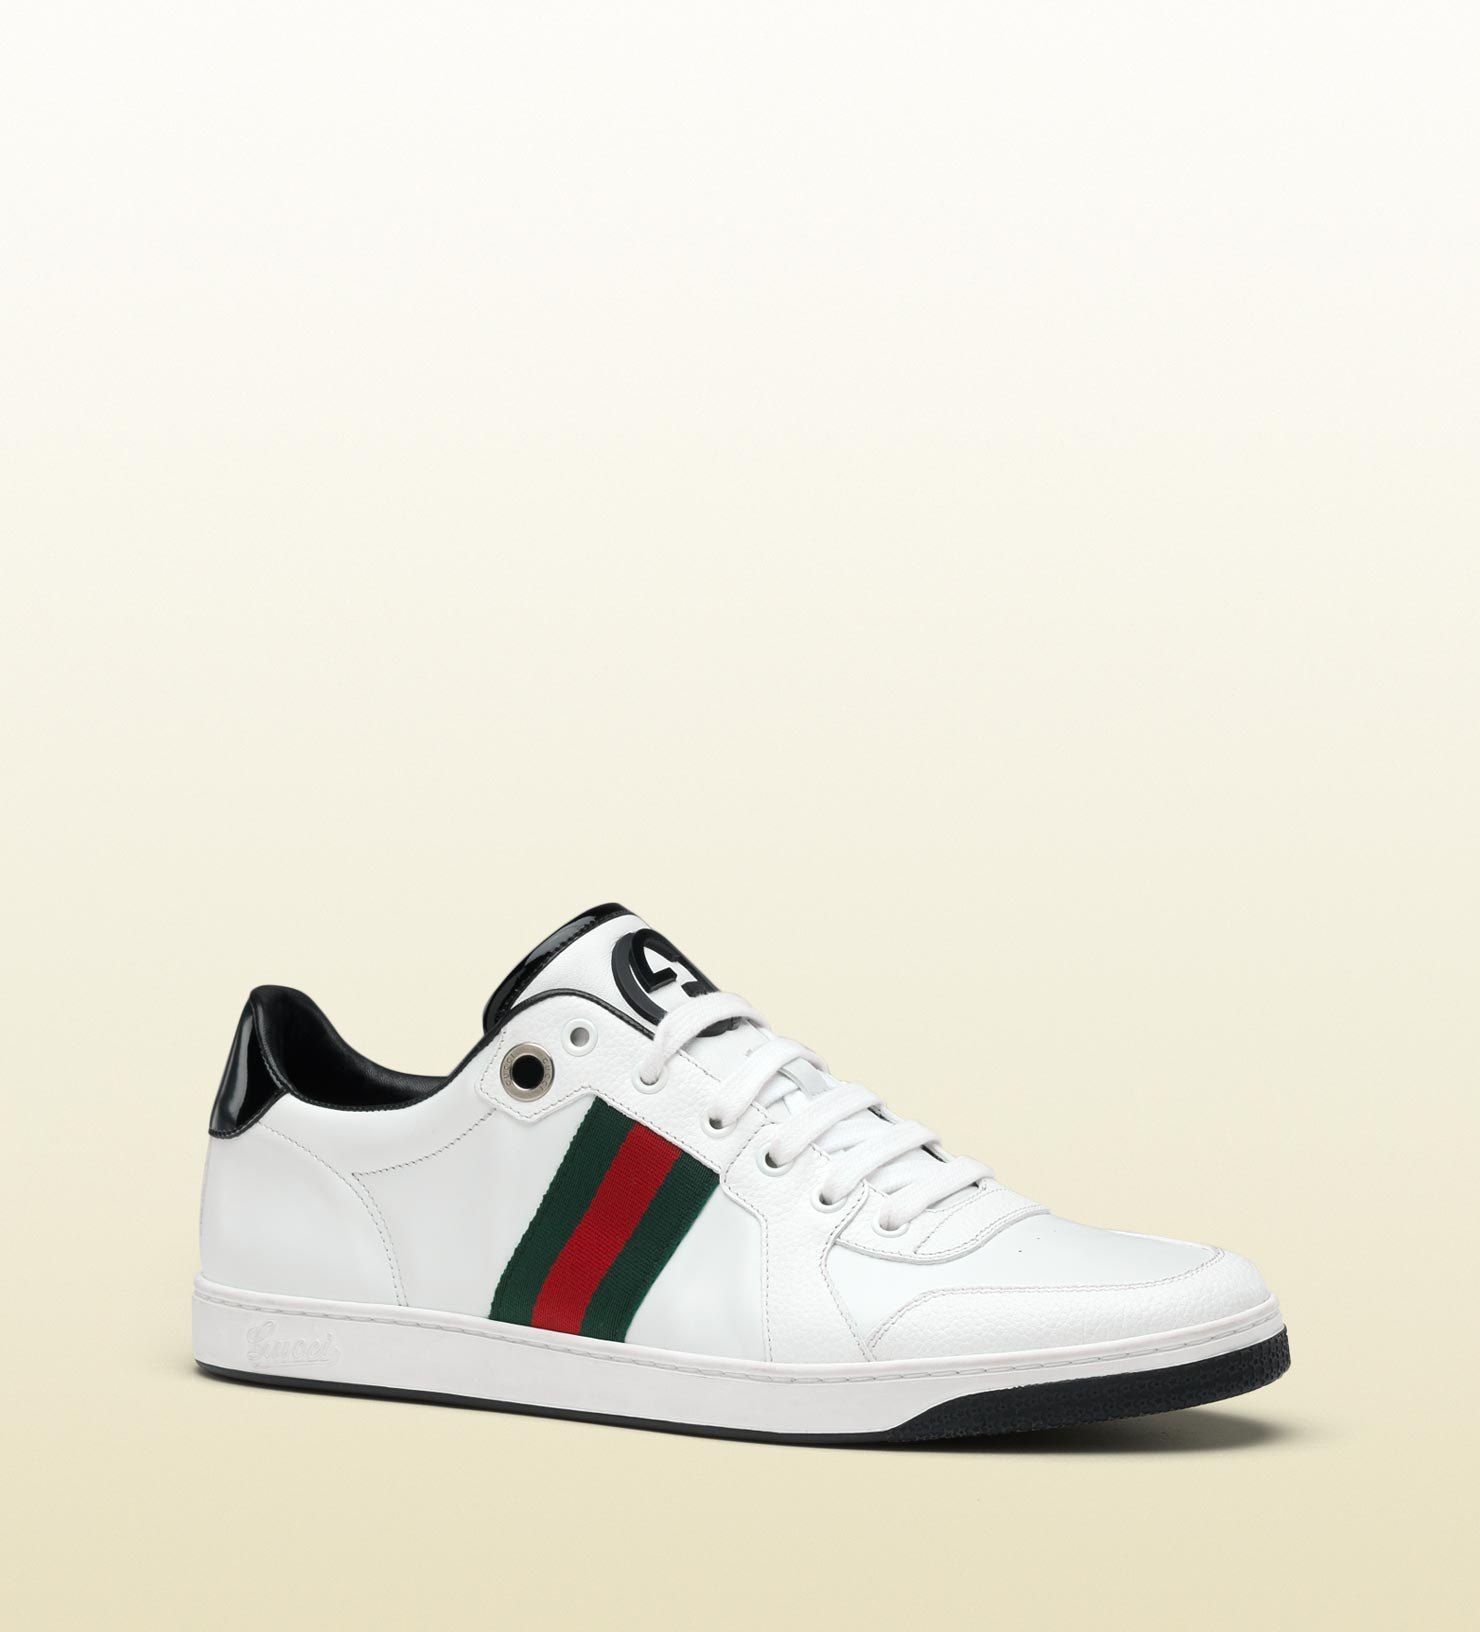 547f79704e8 Lyst - Gucci Lace-up Sneaker With Interlocking G And Signature Web ...